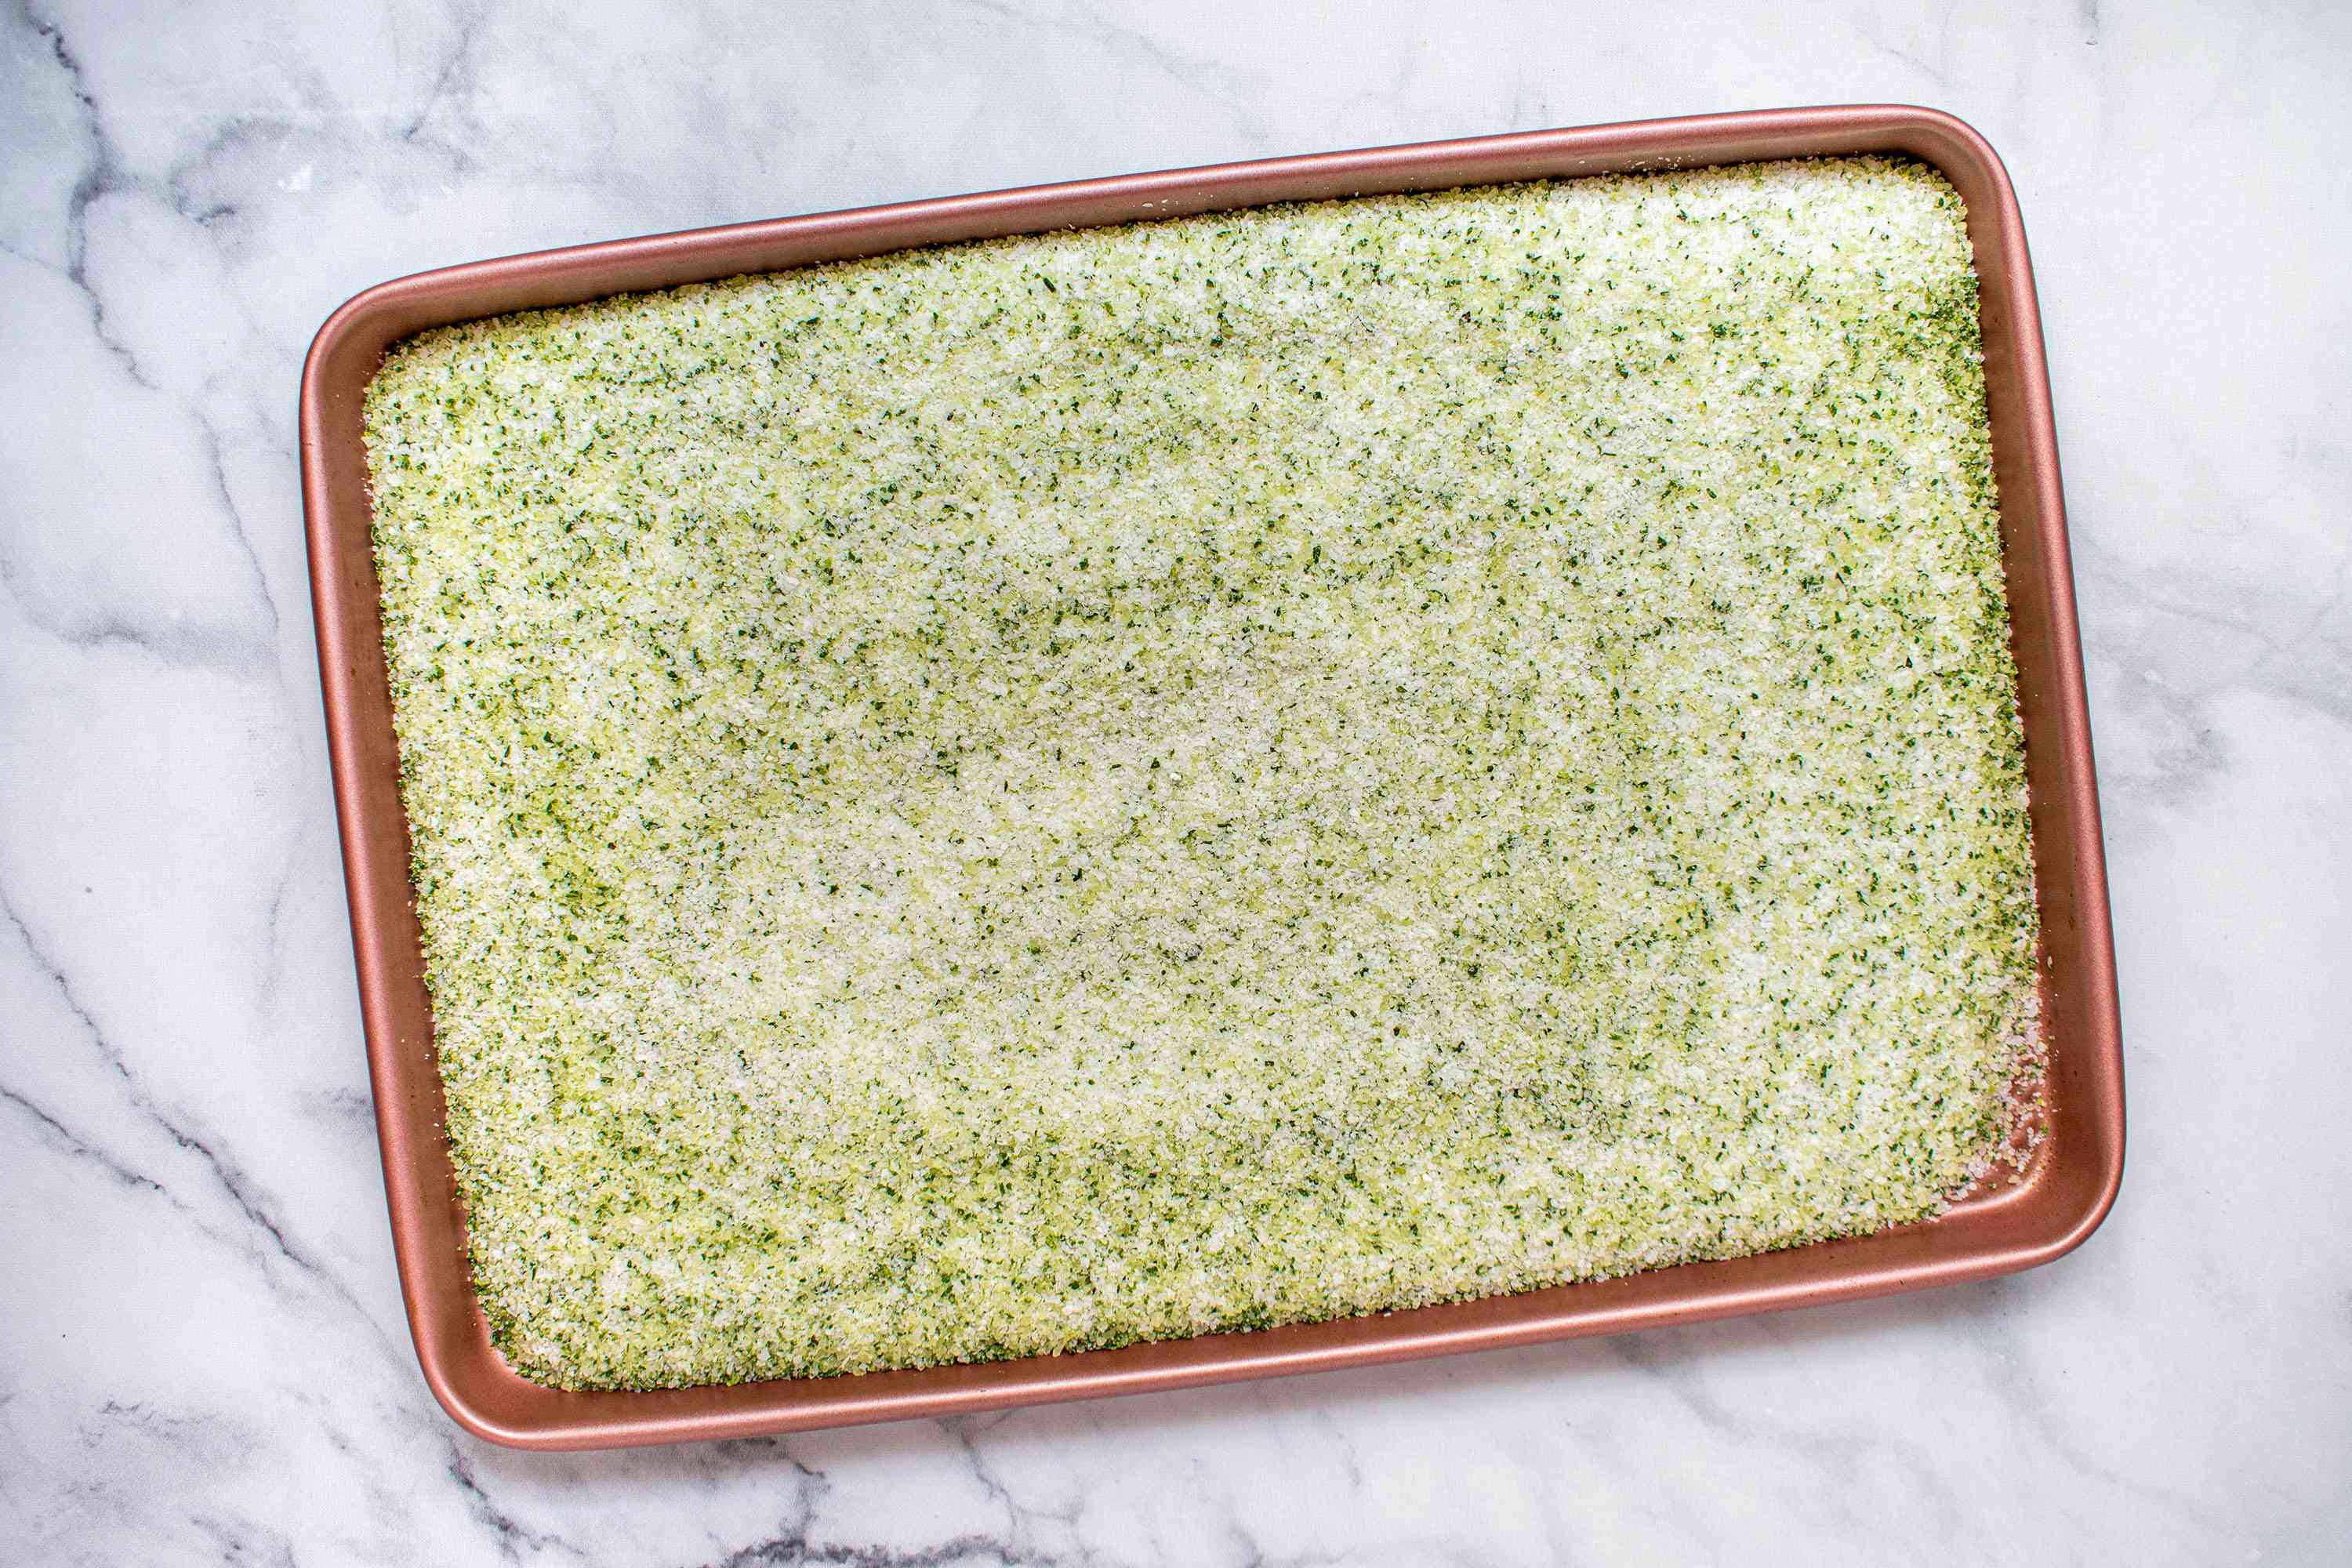 rosemary and salt mixture on a baking sheet